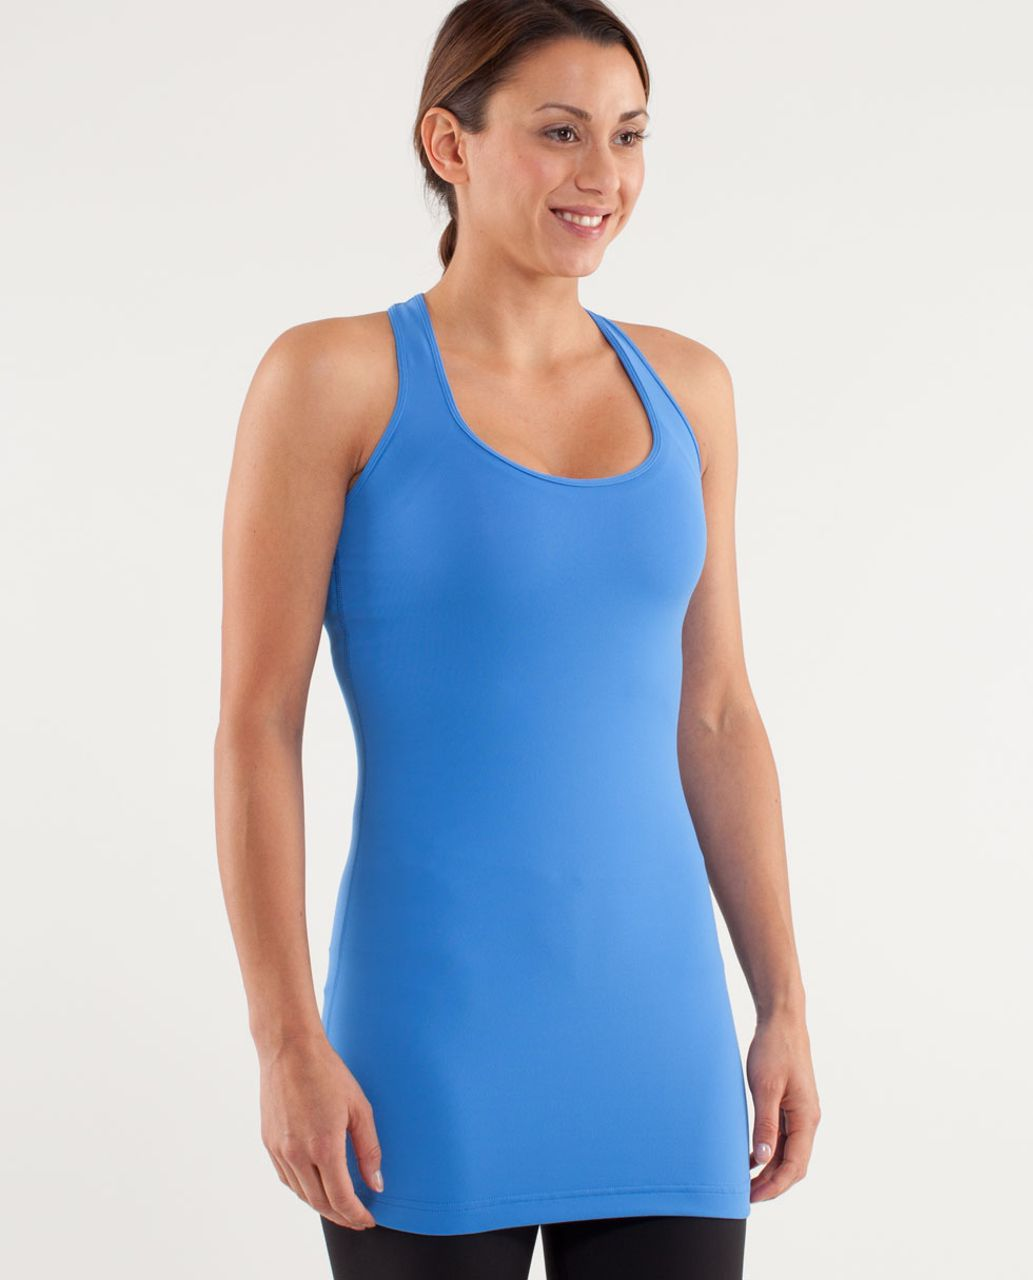 Lululemon Cool Racerback *Extra Long - Porcelaine